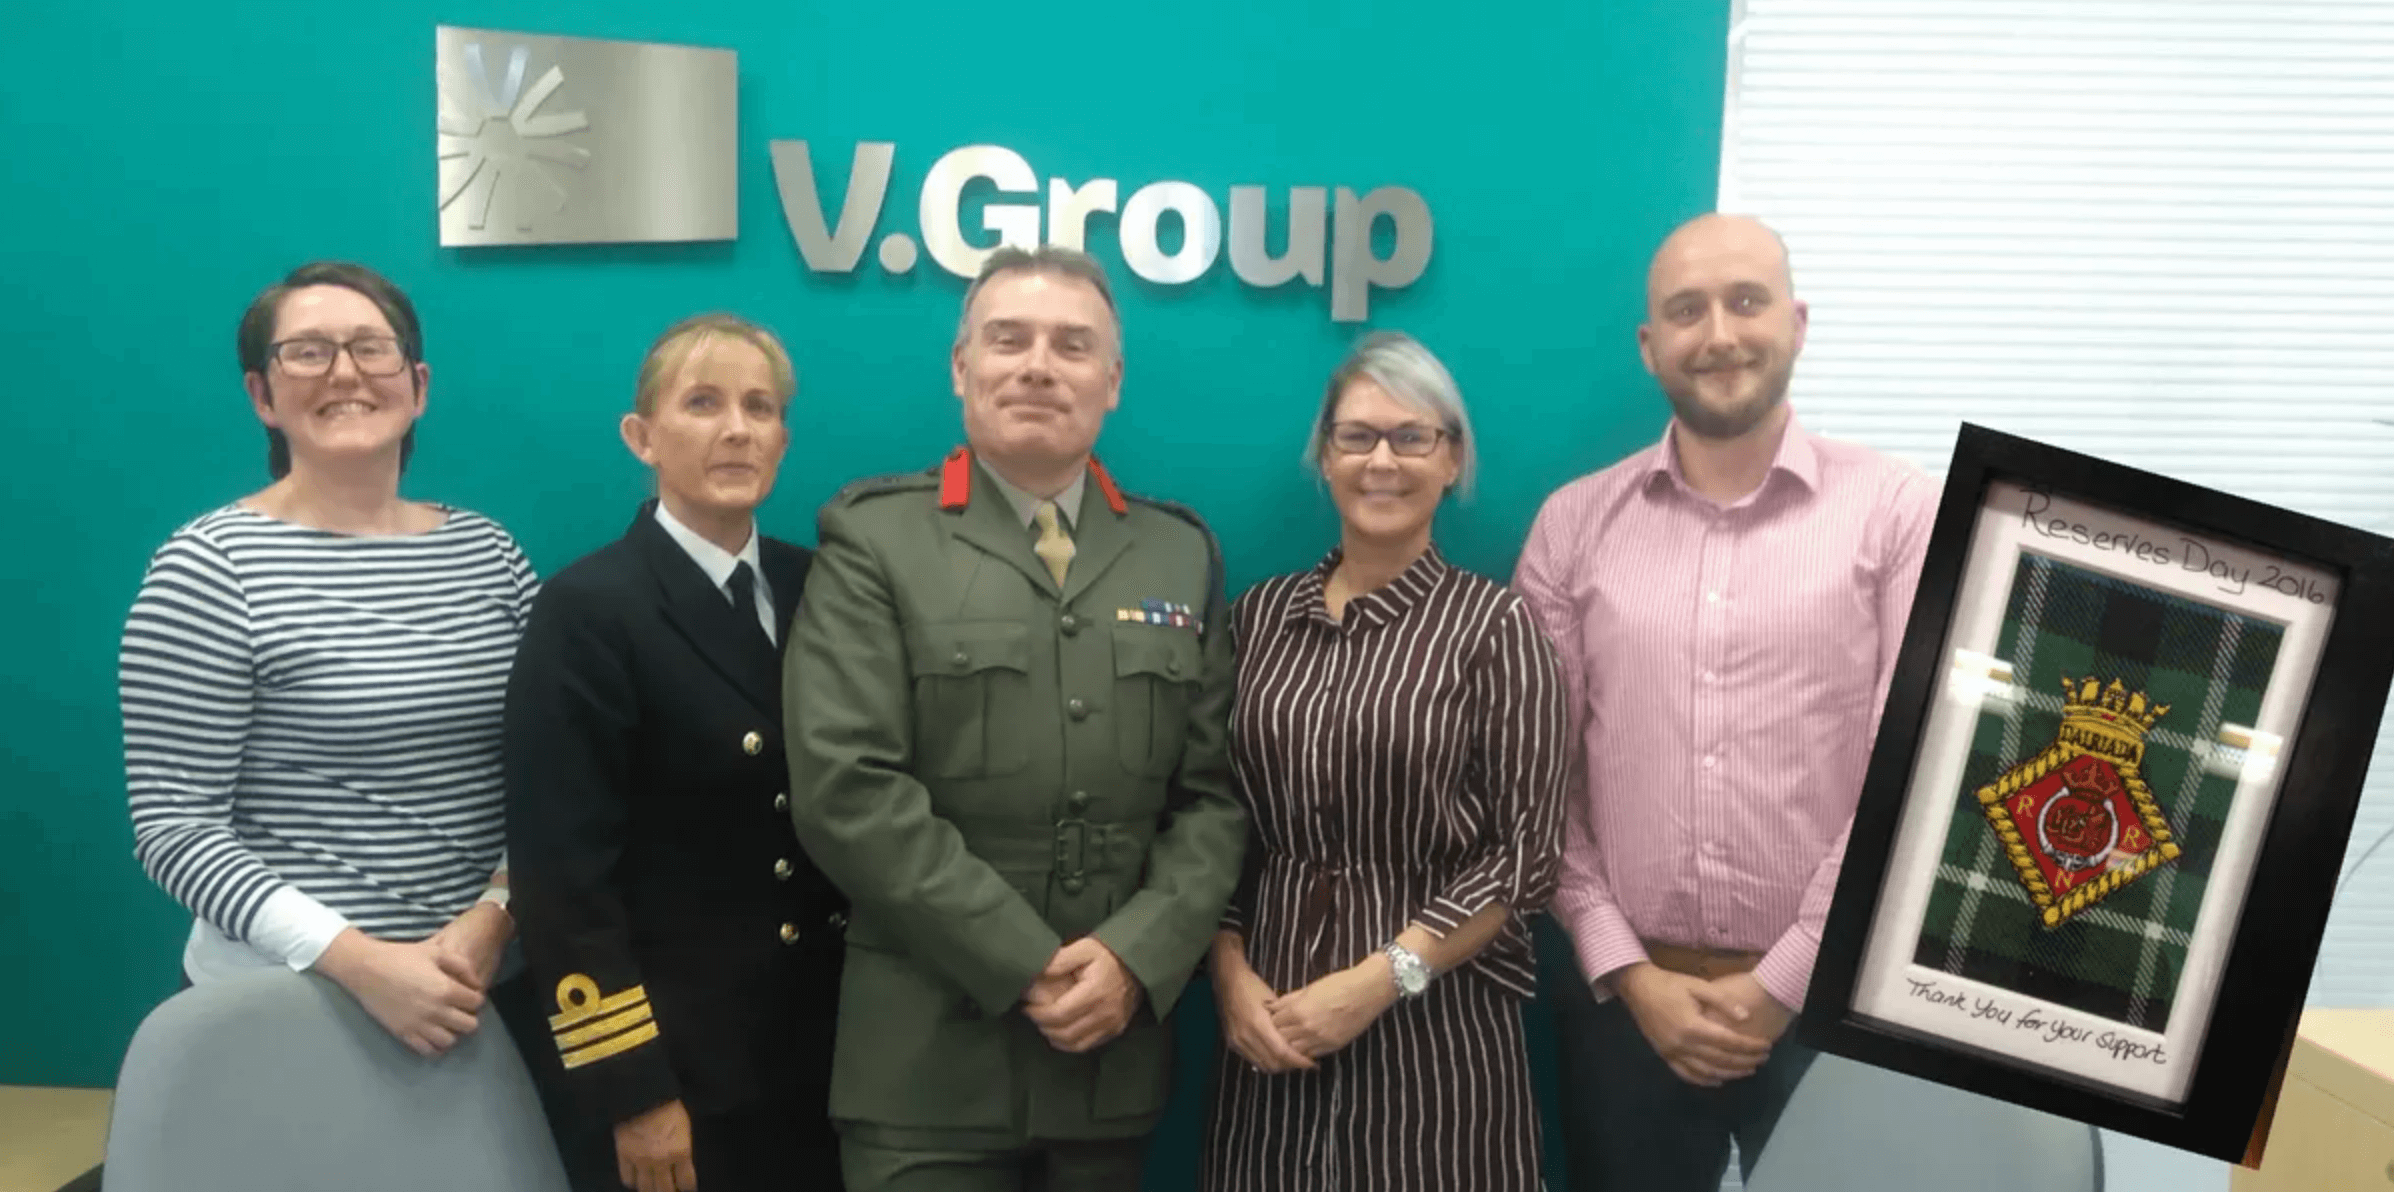 UK Royal Navy Thanks VGroup For Supporting Reservists